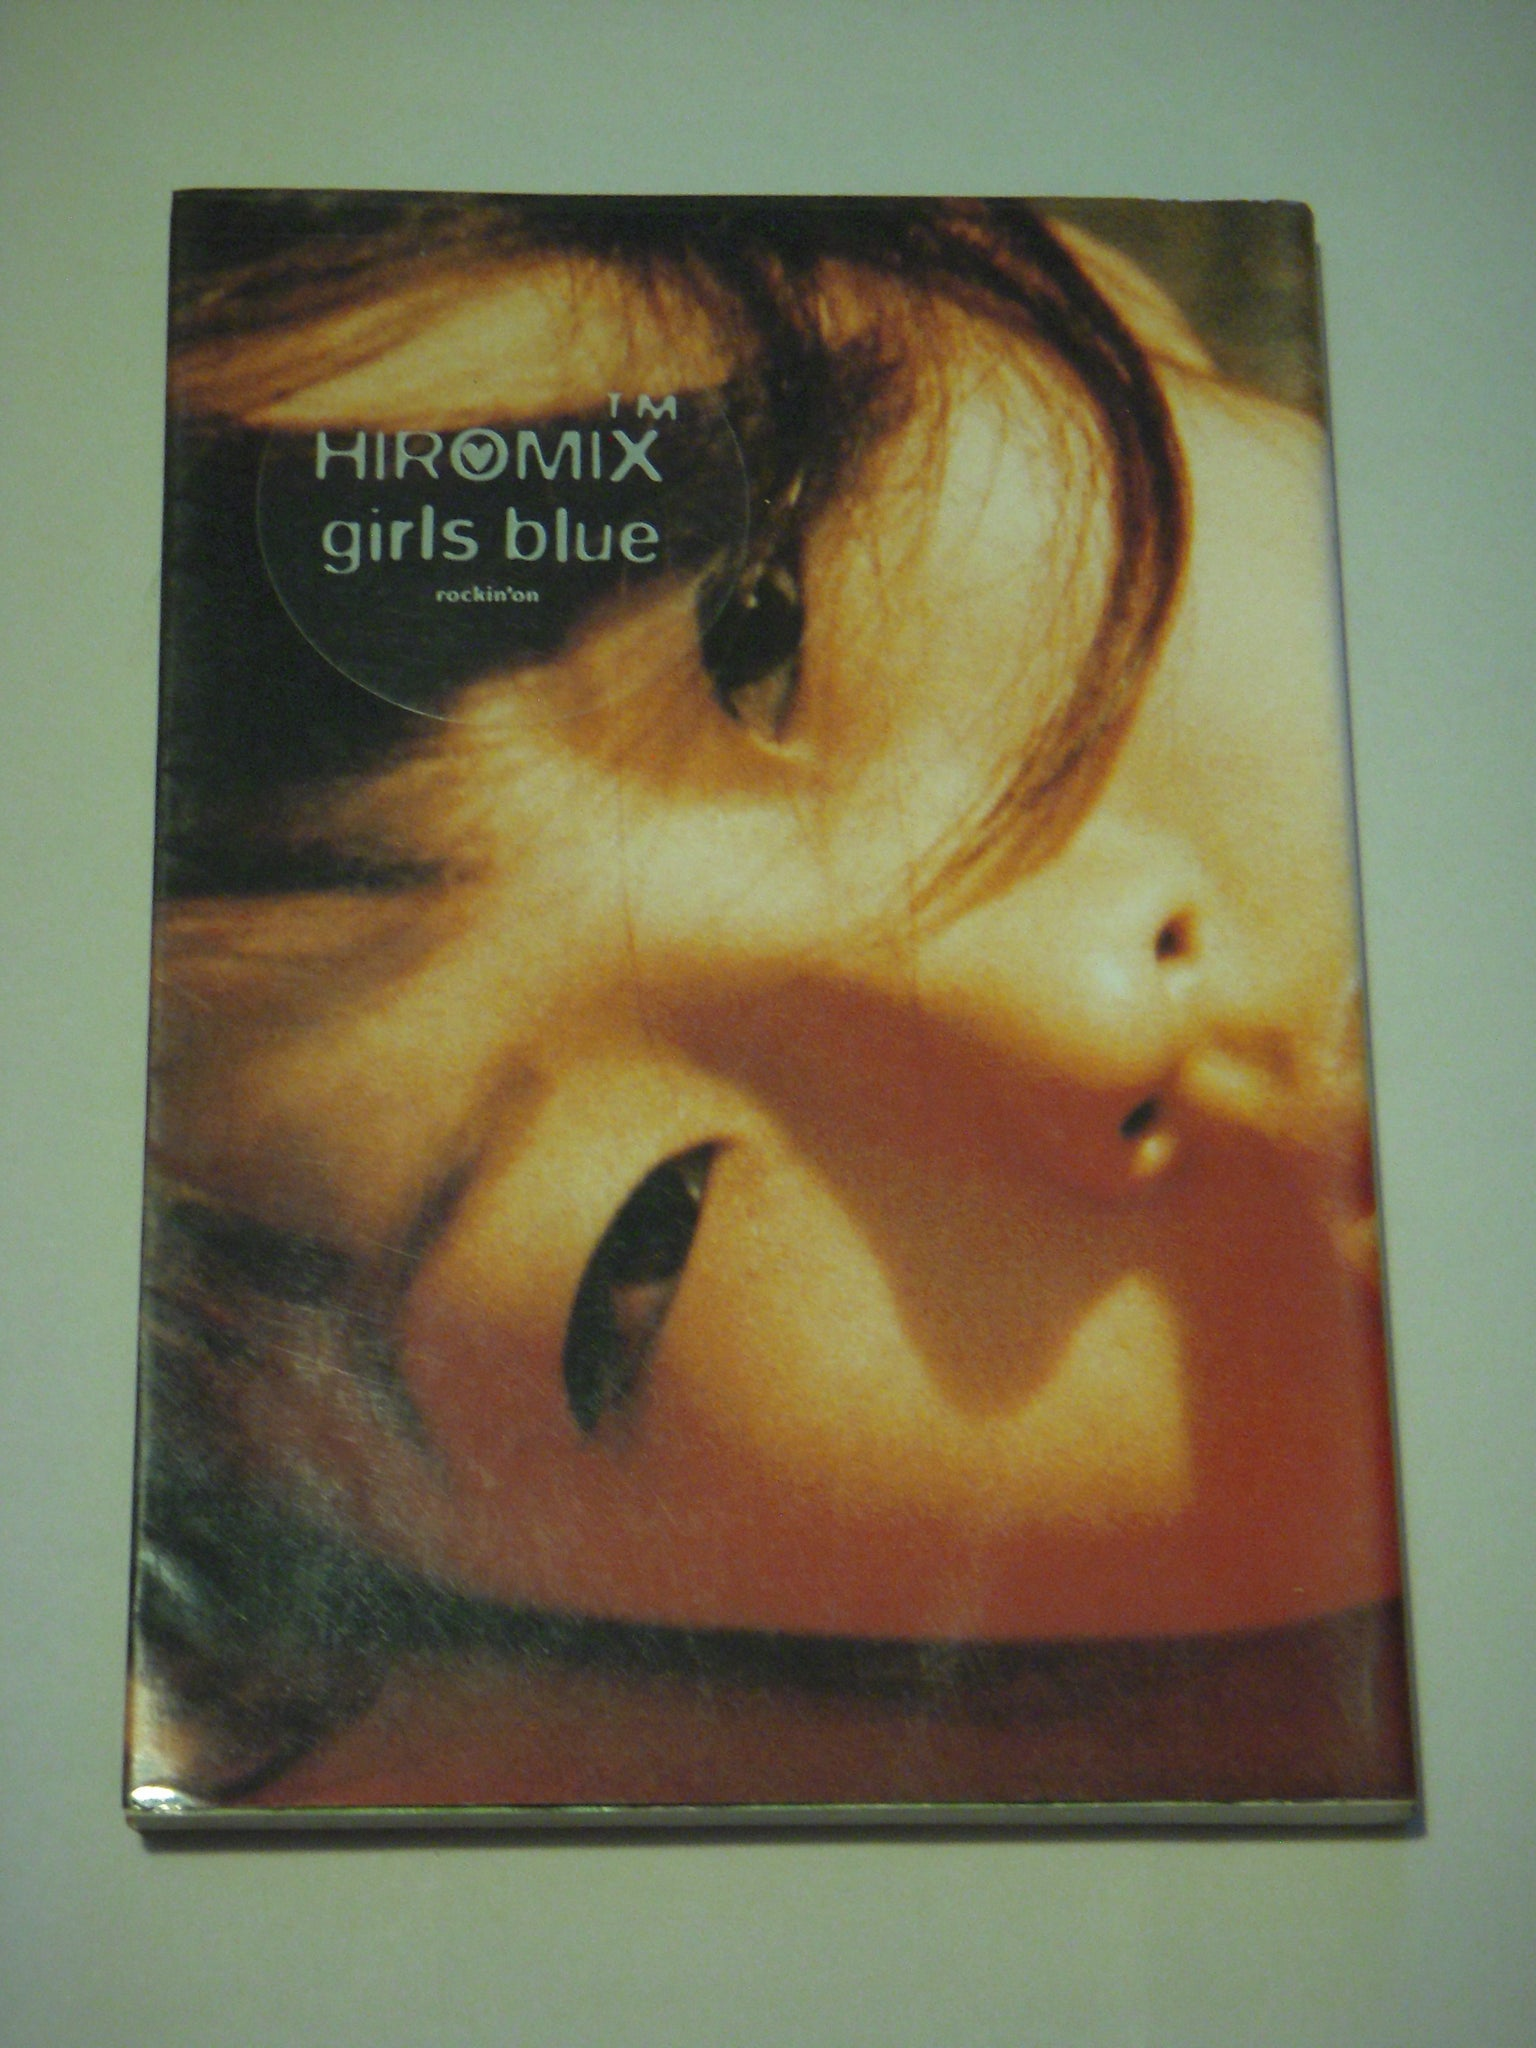 Girl's blue | Hiromix | Rockin'on 1997